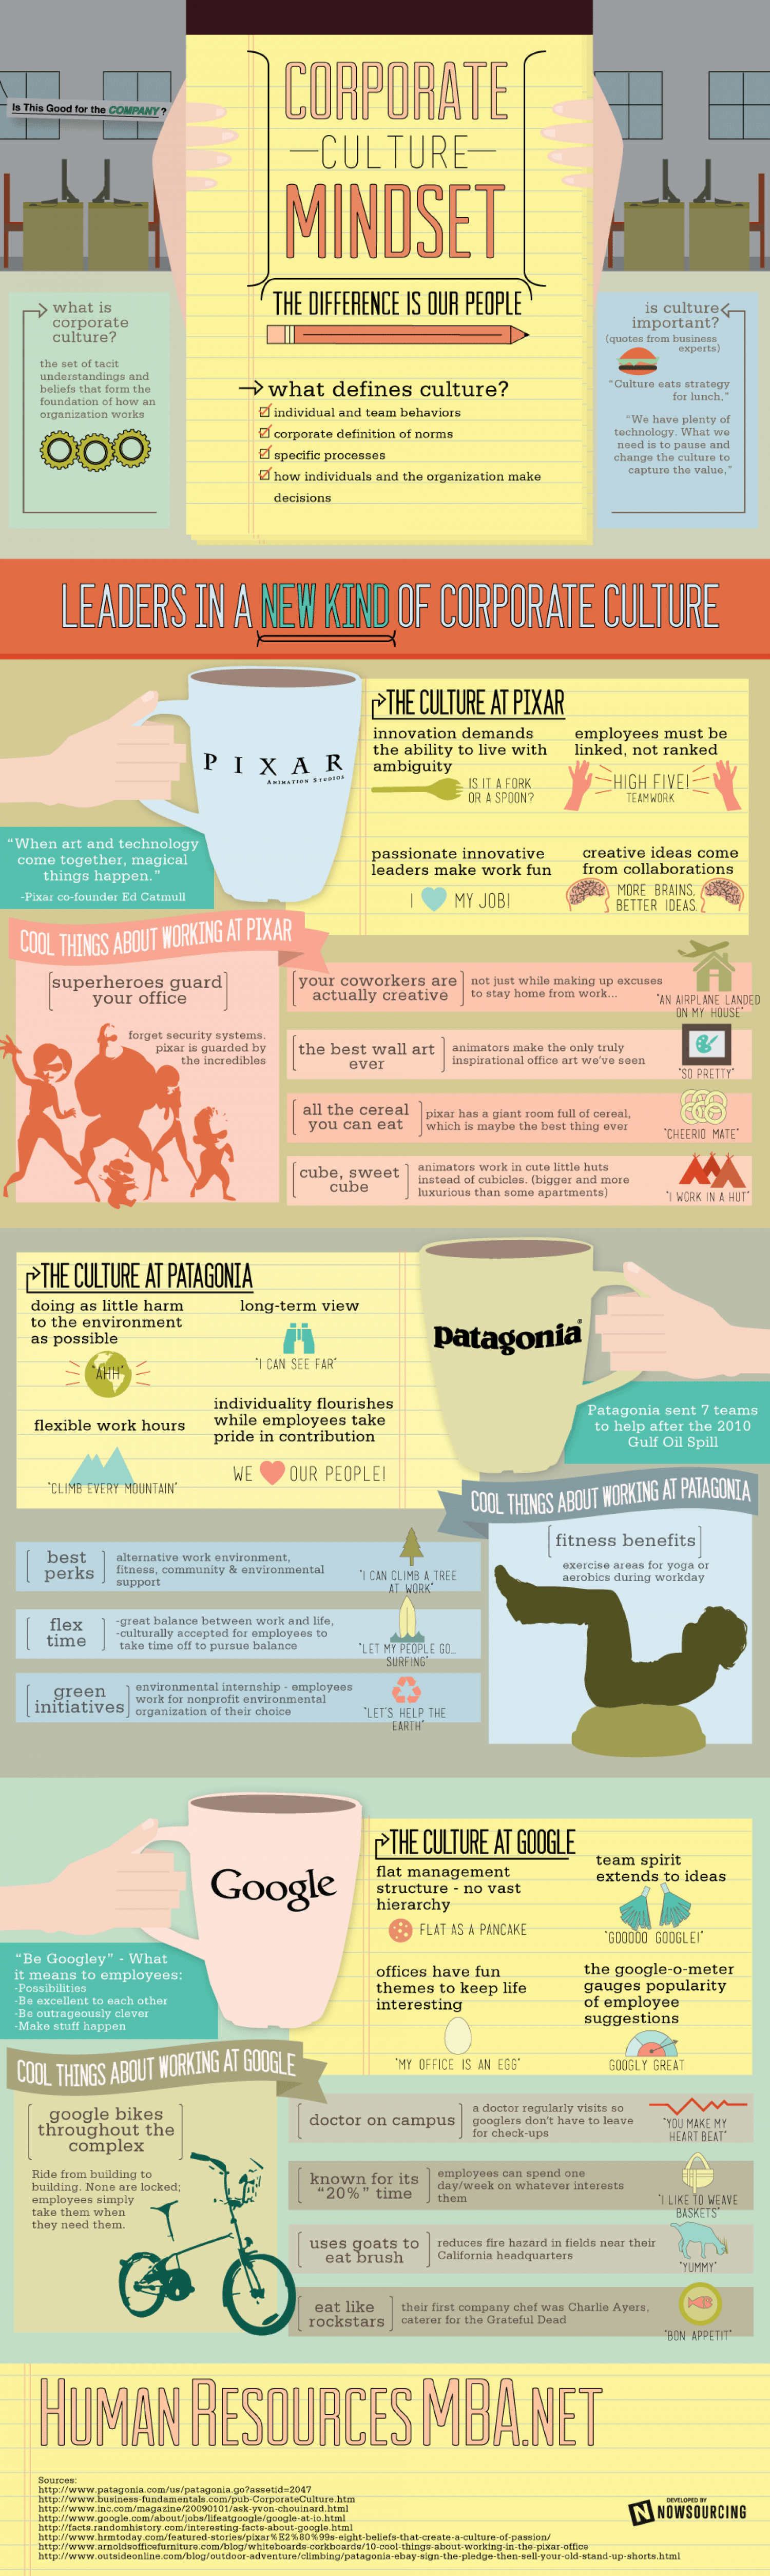 Corporate Culture Mindset Infographic